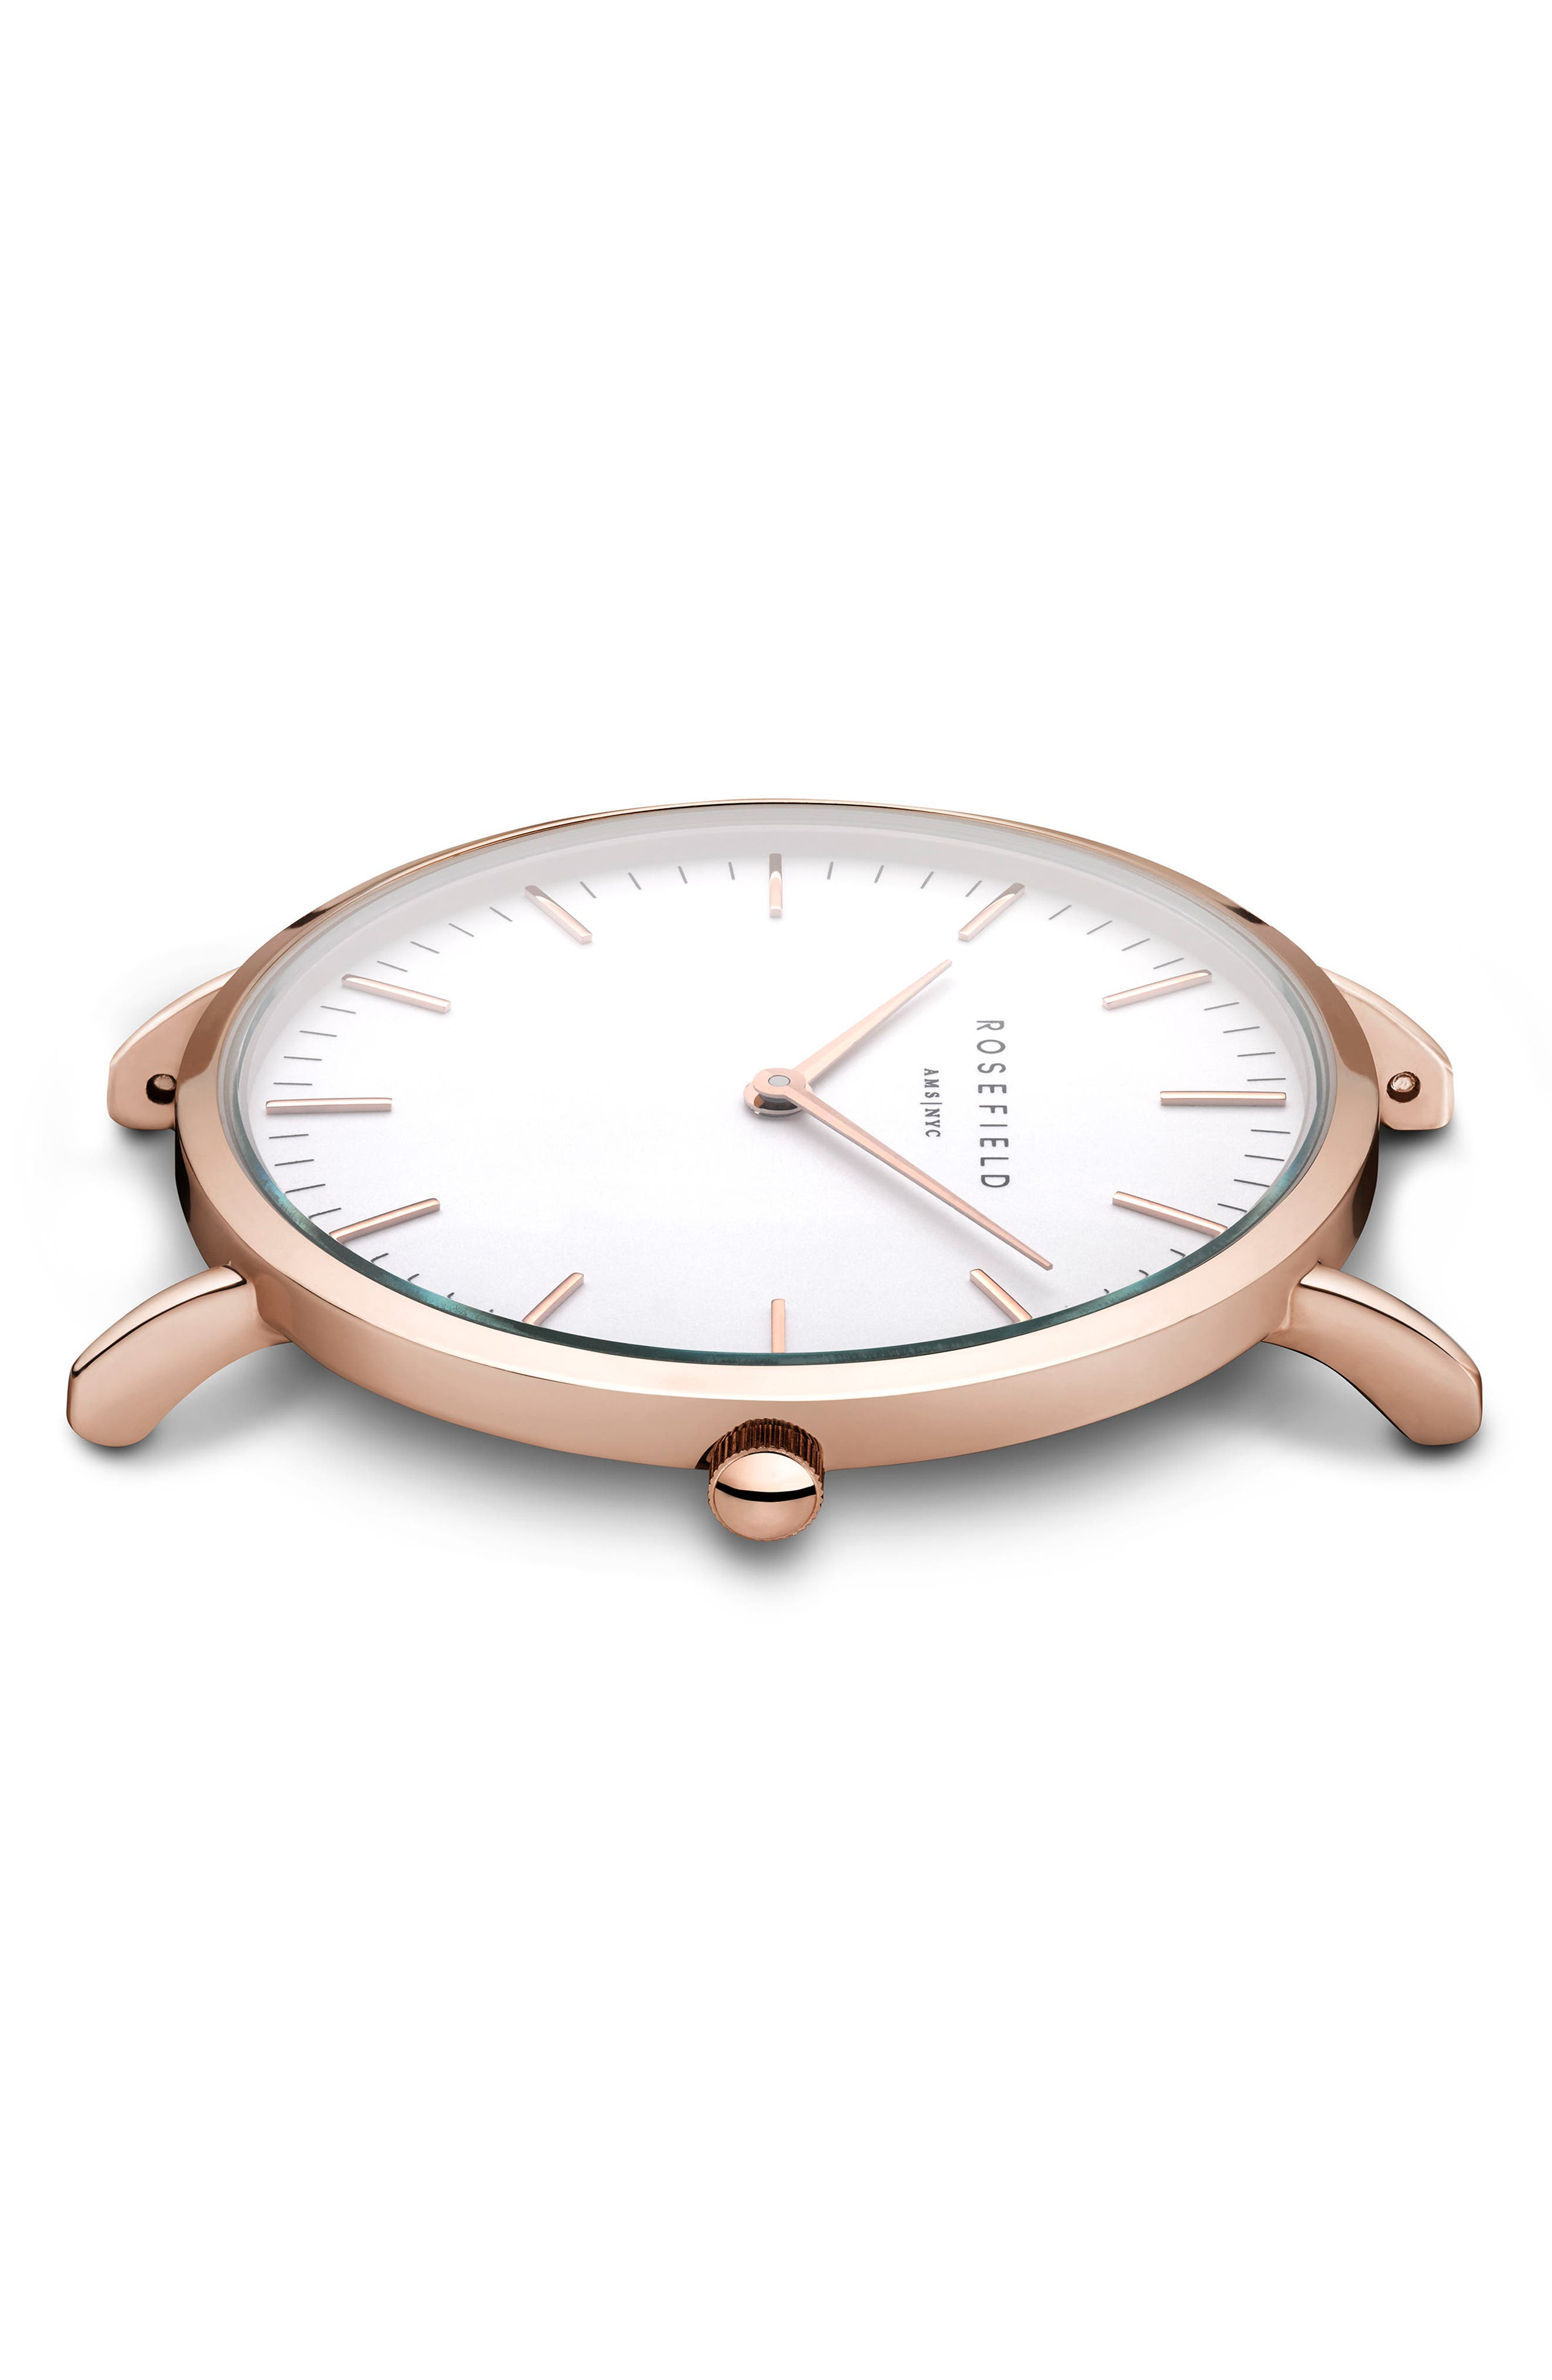 ROSEFIELD, Bowery Leather Strap Watch, 38mm, Alternate thumbnail 3, color, GREY/ WHITE/ ROSE GOLD